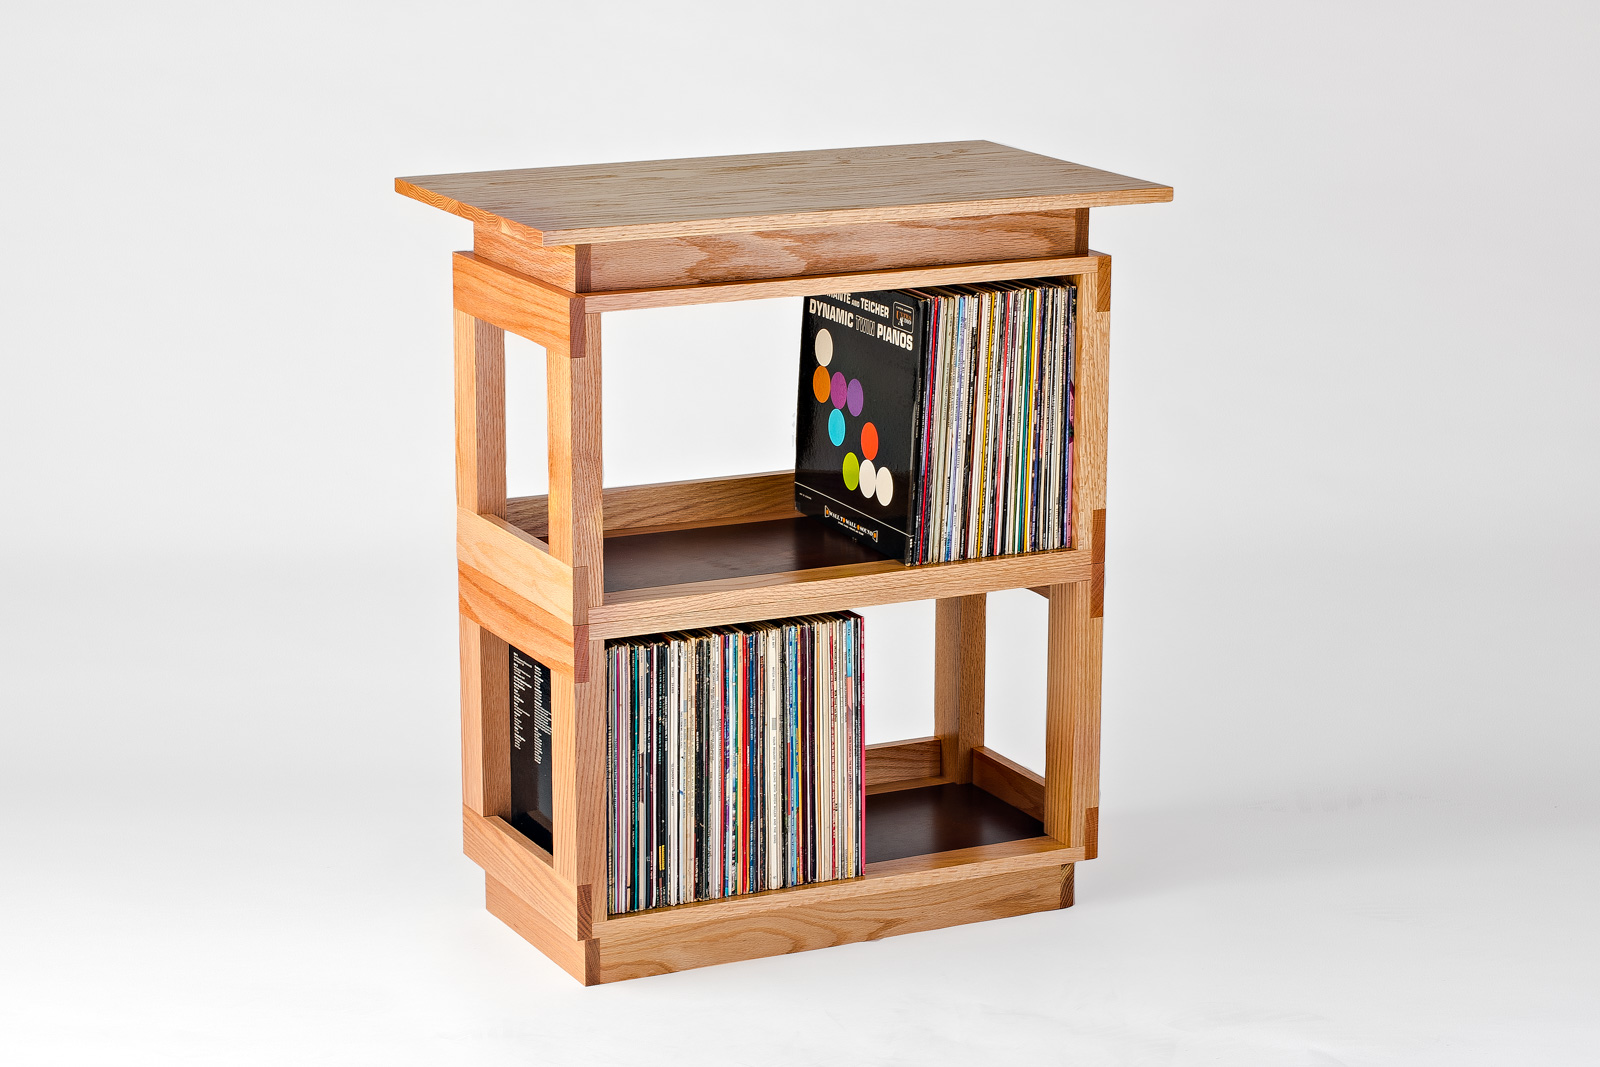 Oak Eleganza Side Table with Pedestal Top : NEW! Holds +/- 300 LPs